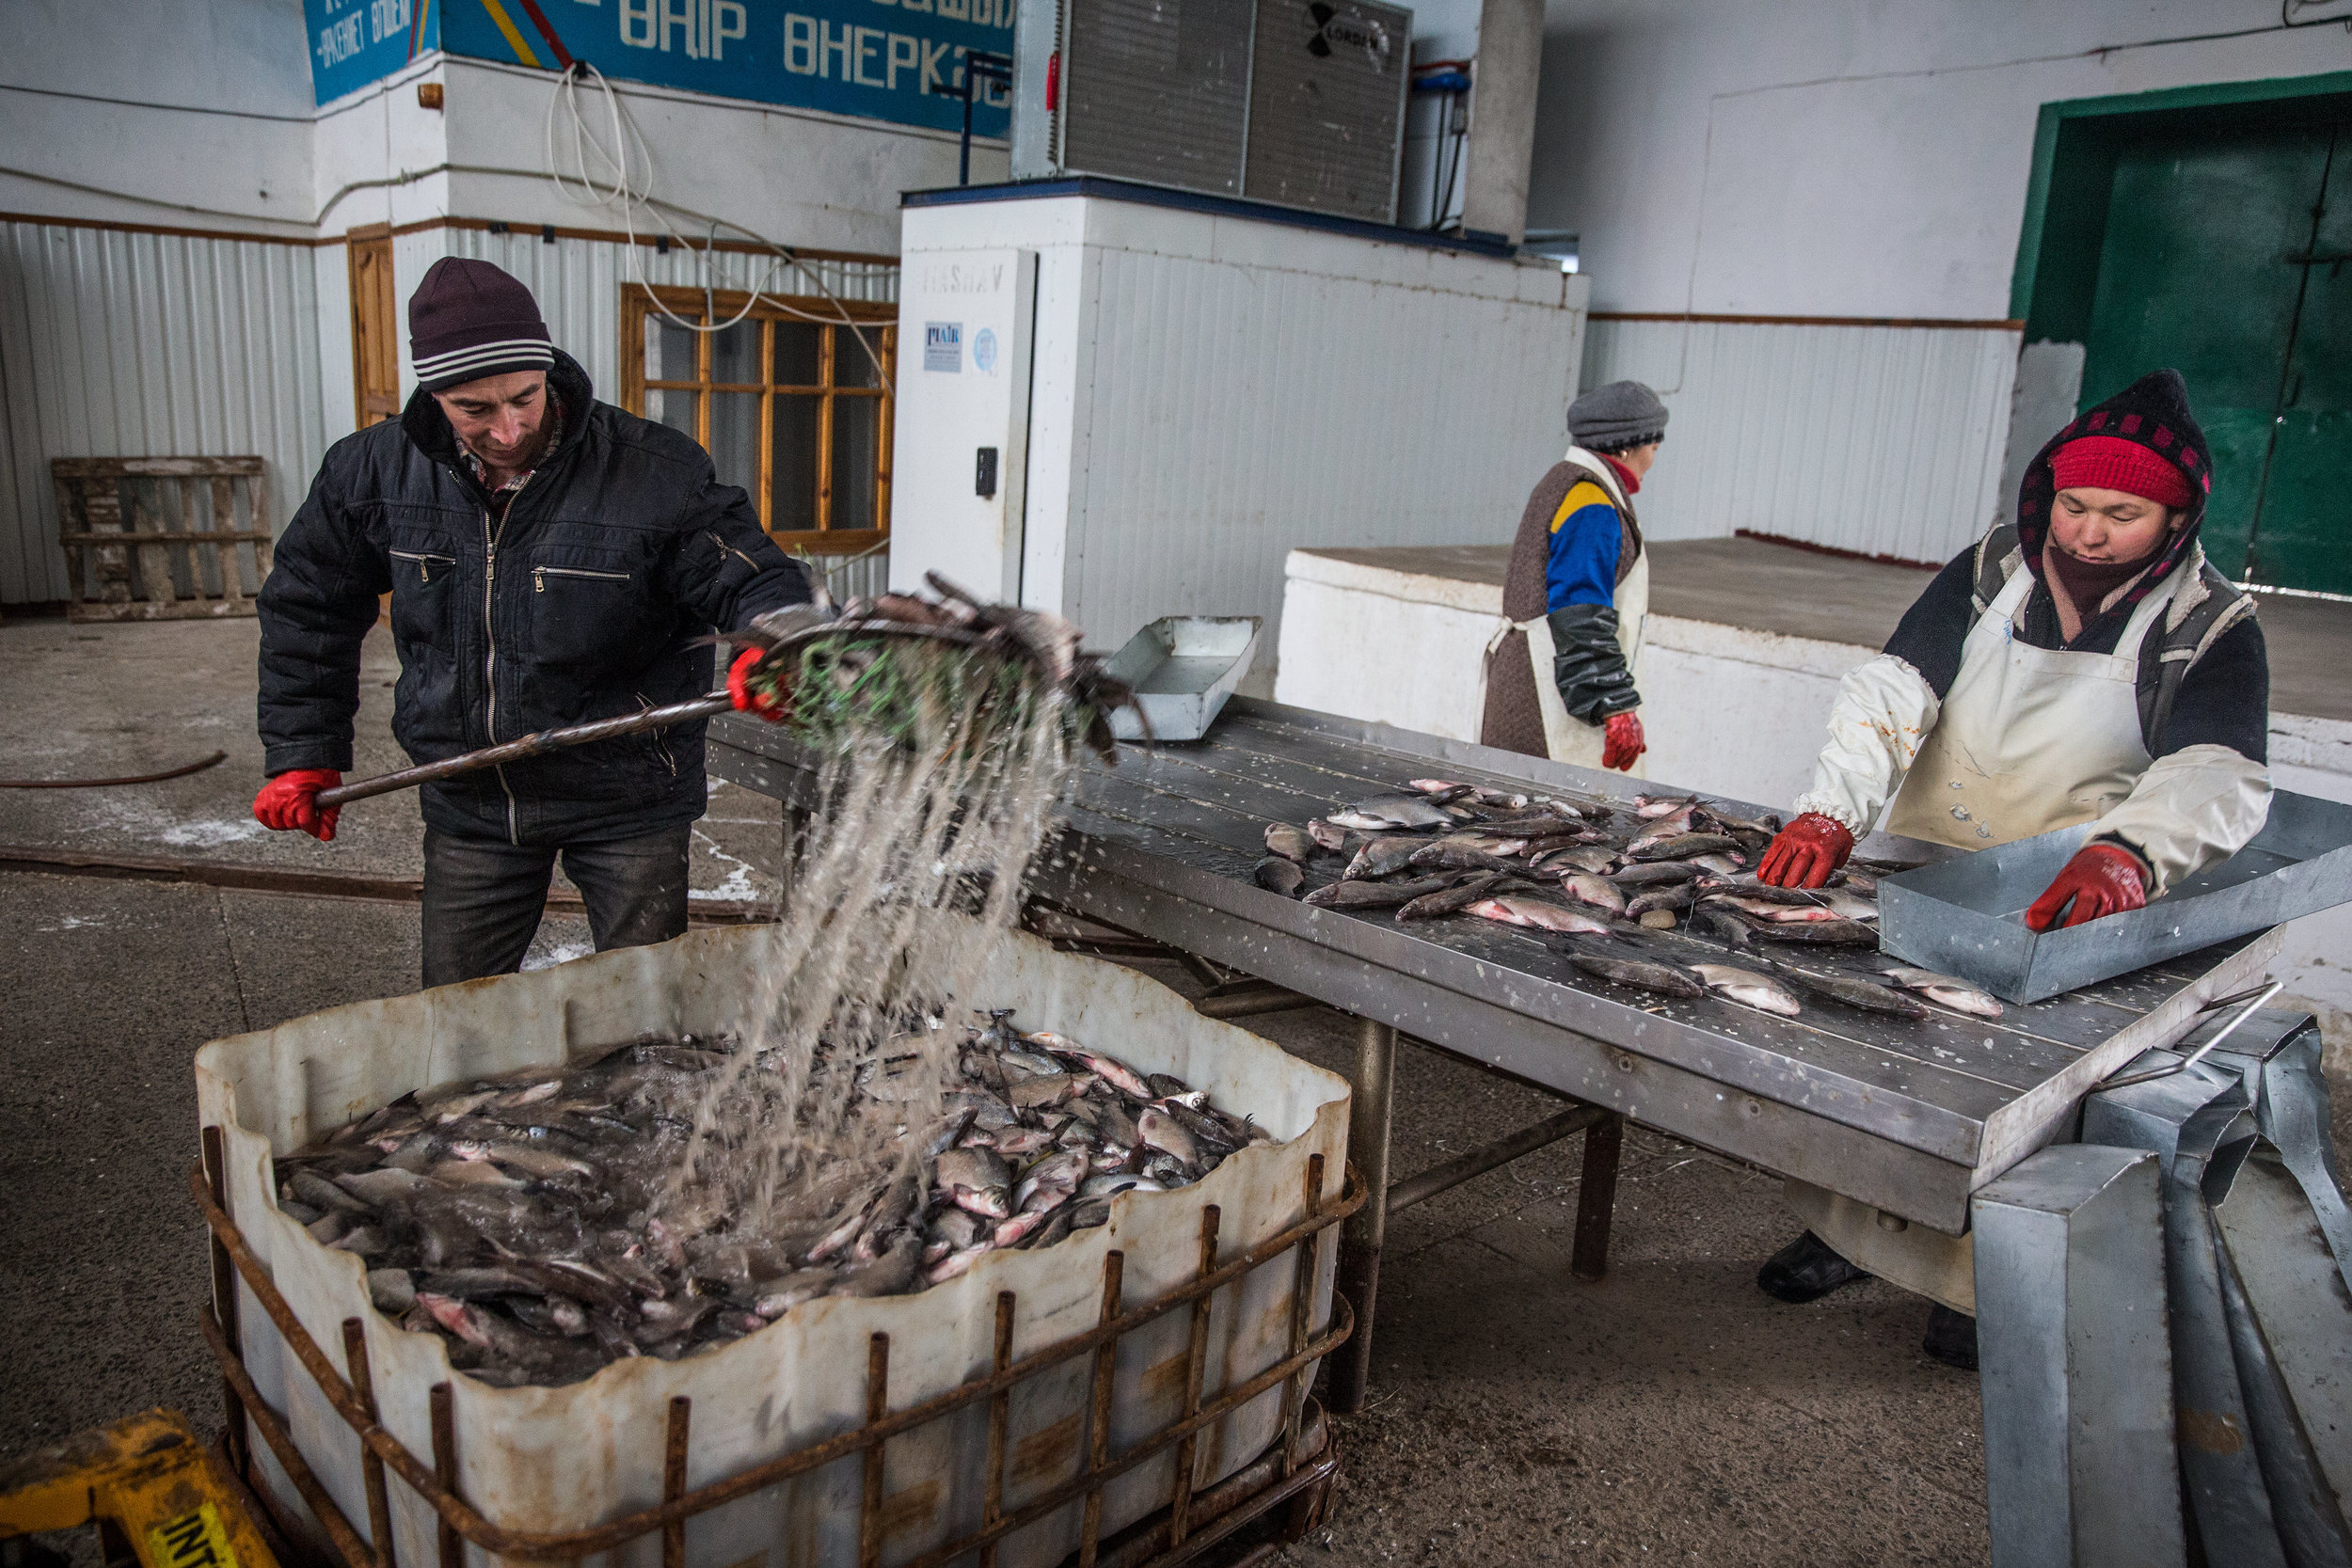 Workers process fish at a plant in Aralsk, Kazakhstan. (Credit: Taylor Weidman)